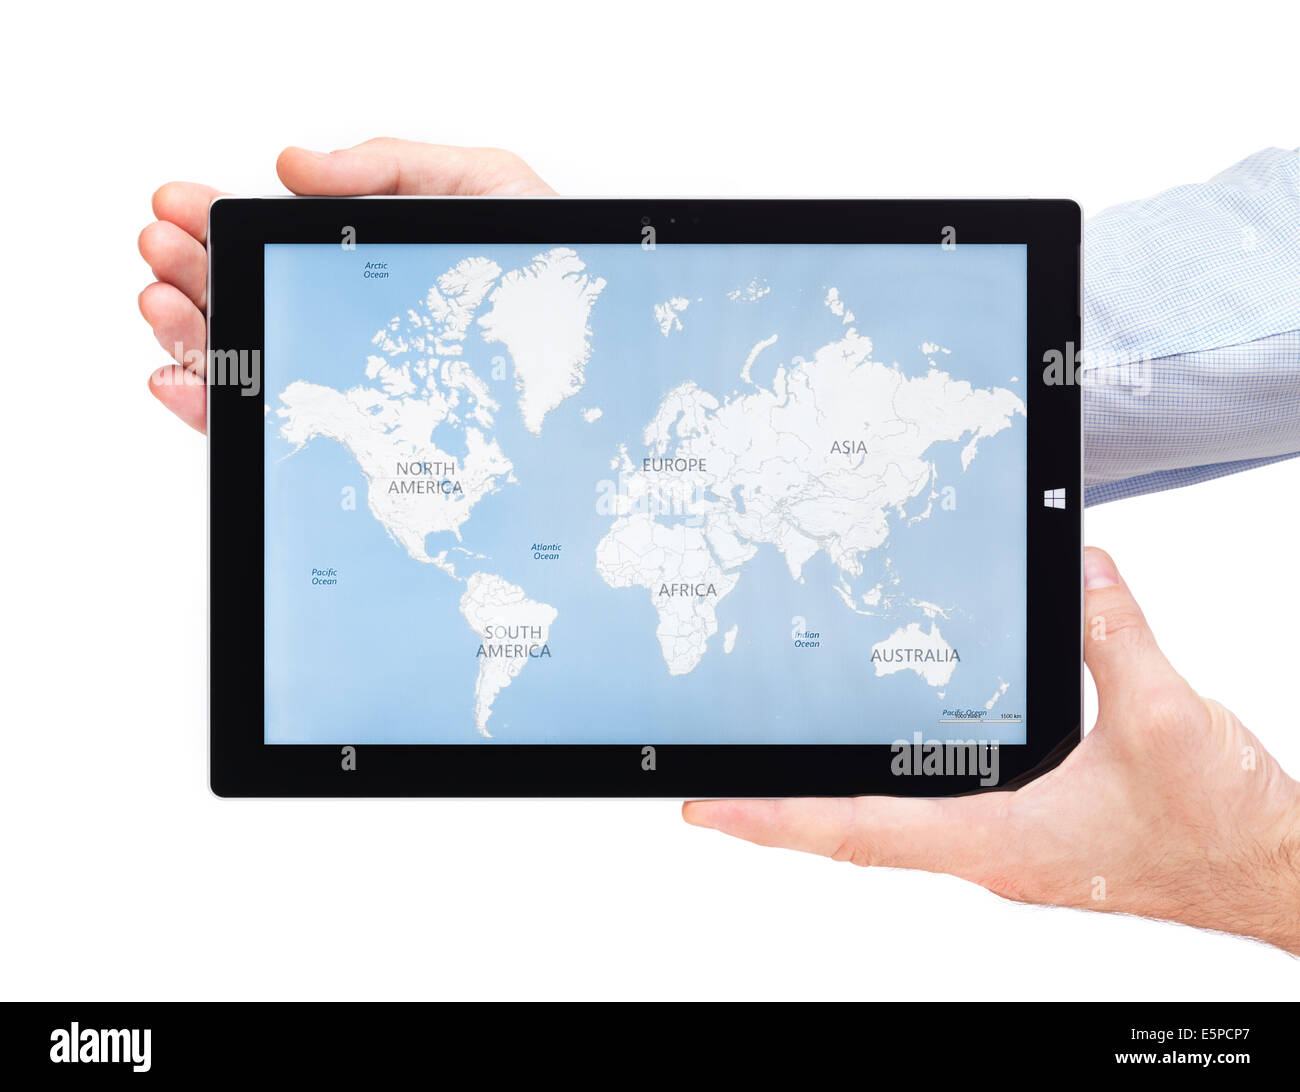 Person hands holding Microsoft Surface Pro 3 tablet computer with world map on its display isolated on white background - Stock Image